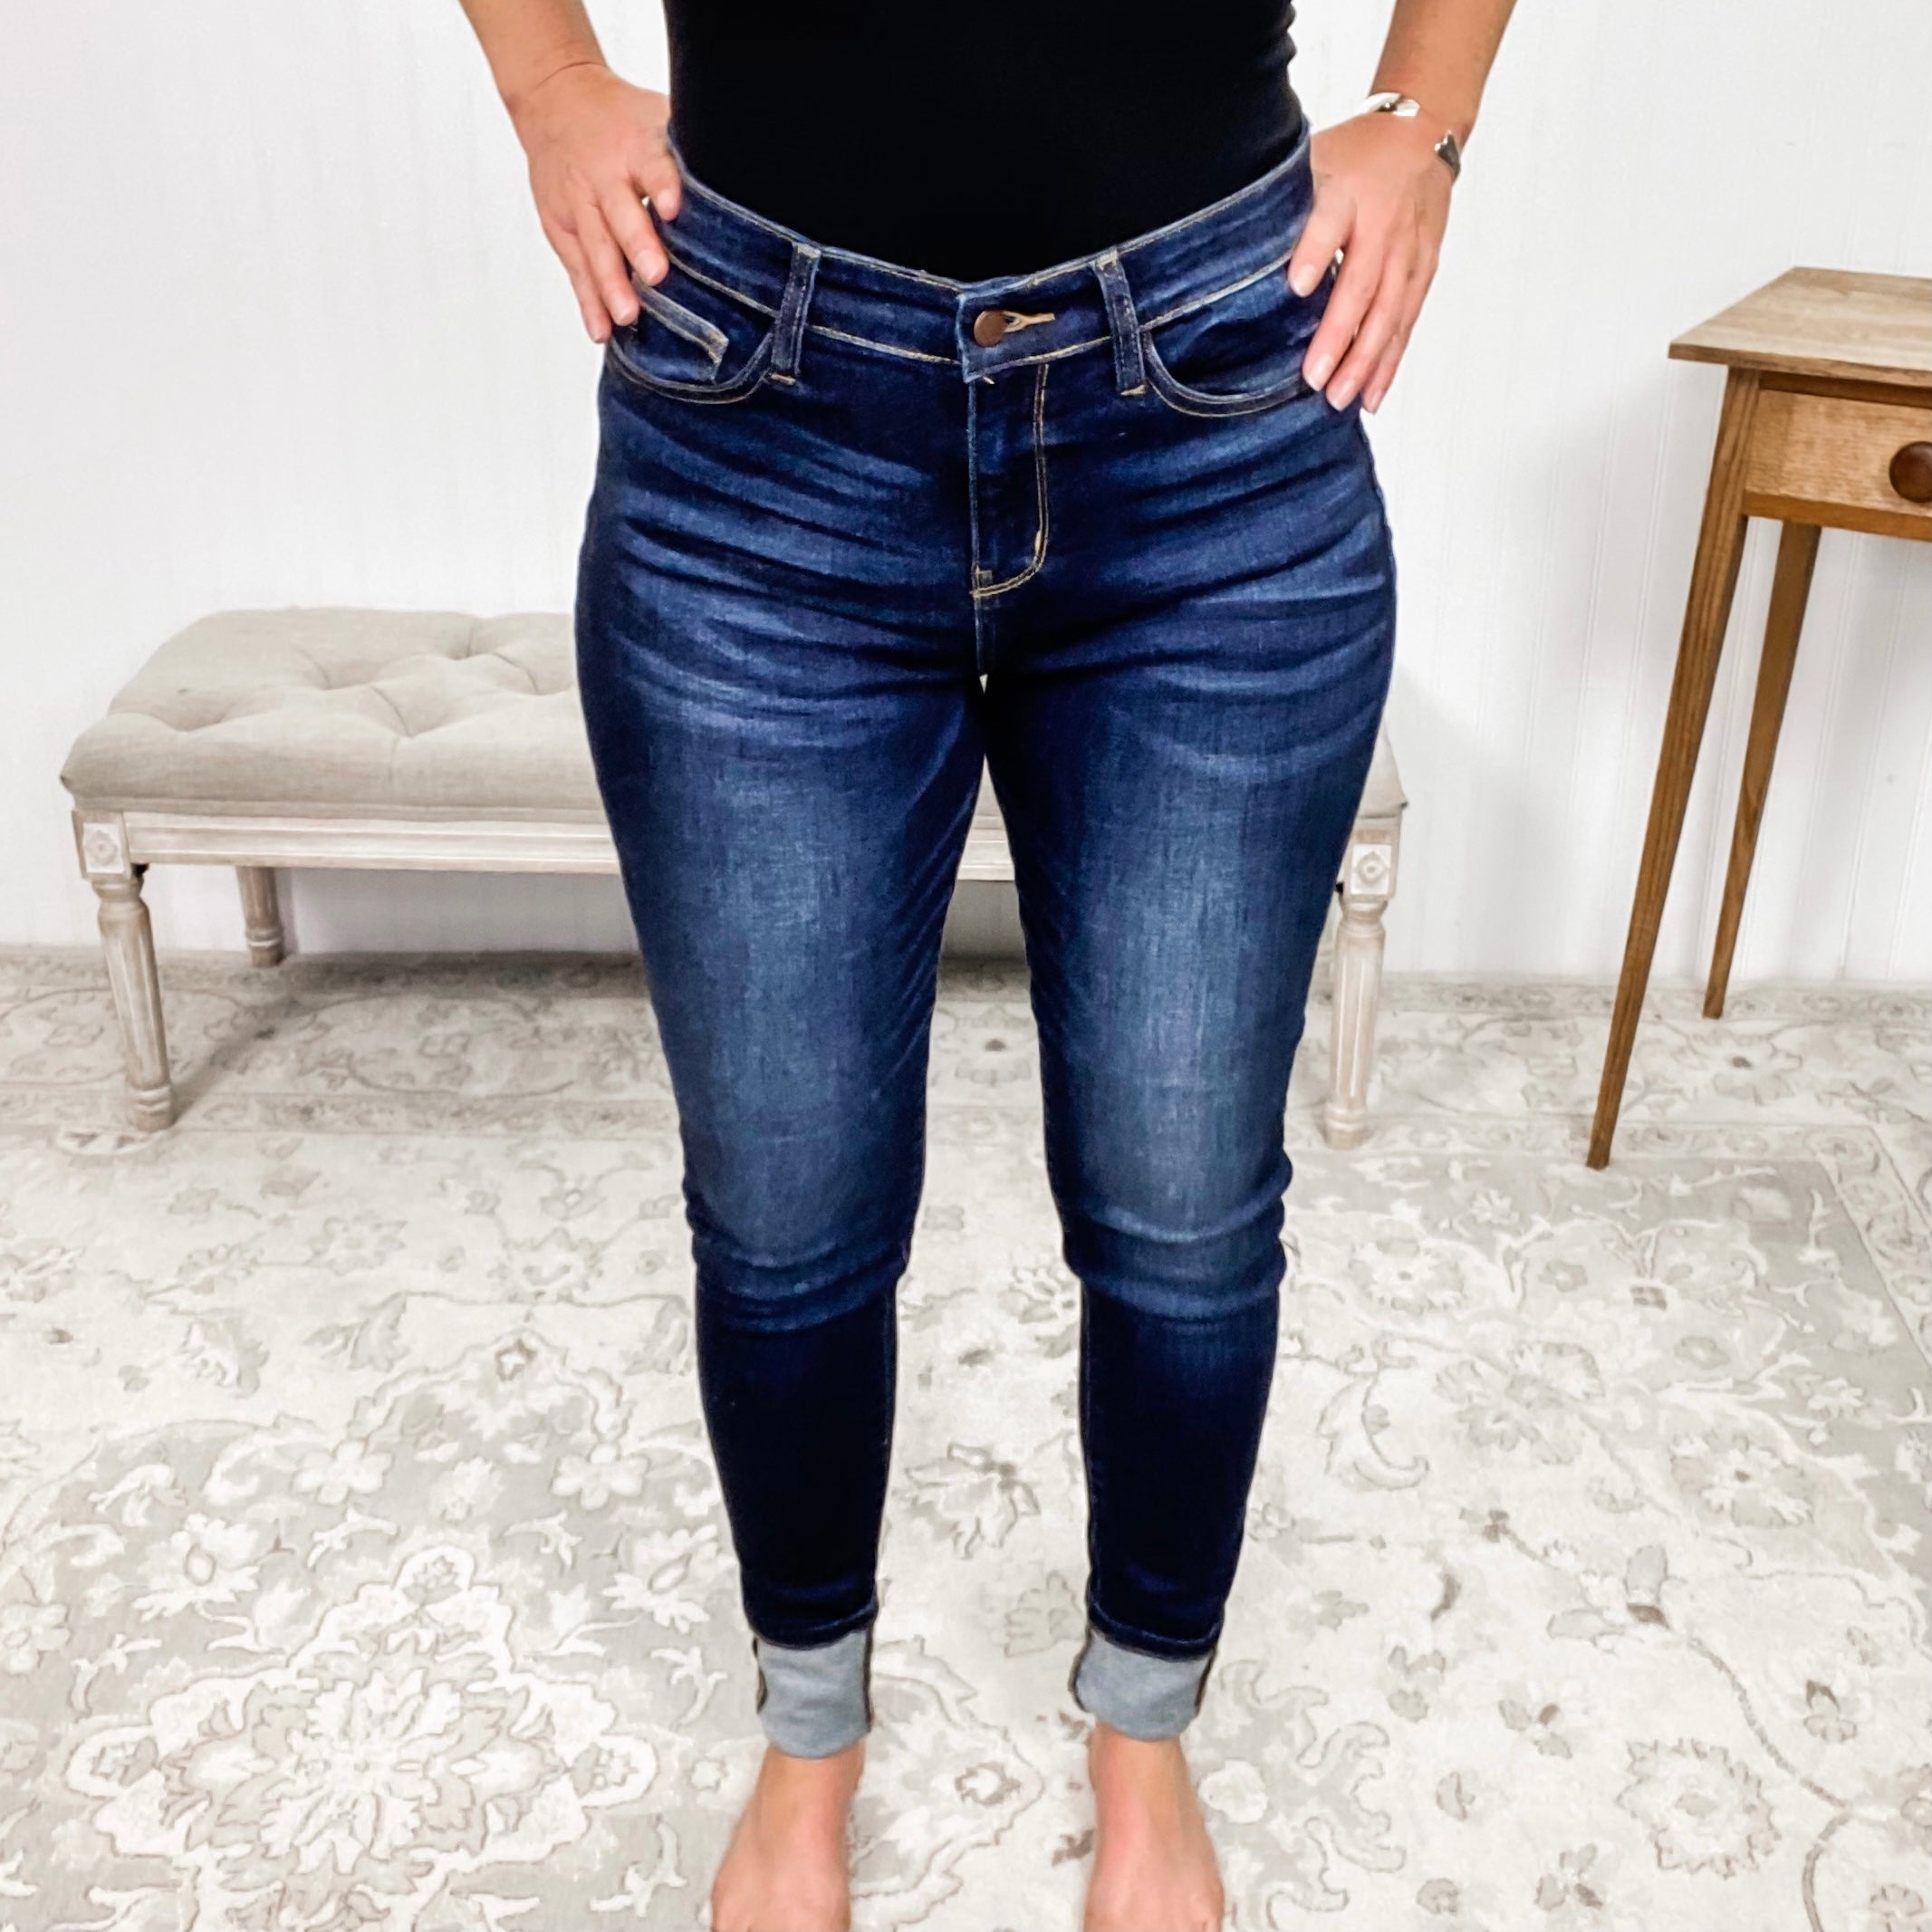 It's All About The Cuff Judy Blue Jeans